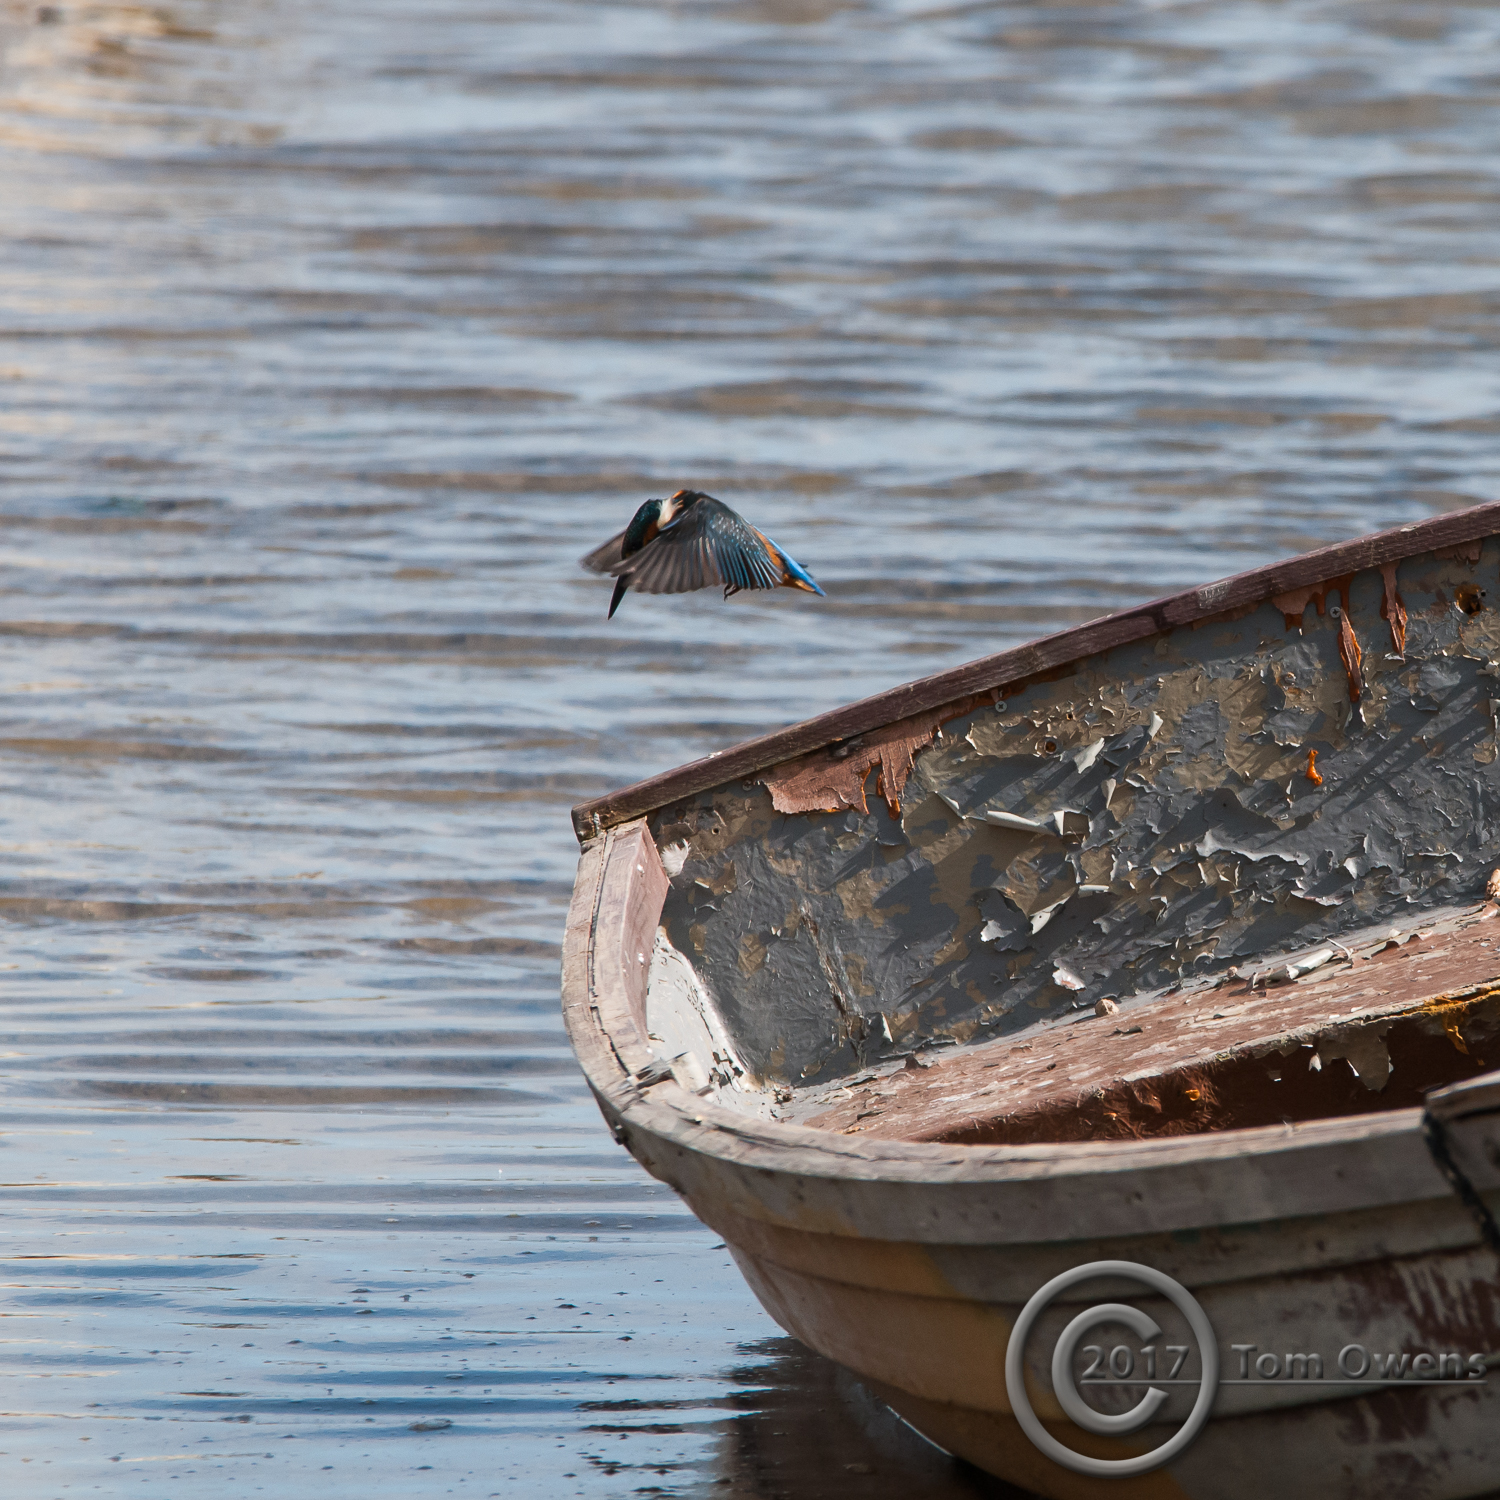 Male Kingfisher hovering by th estern of a rowing boat